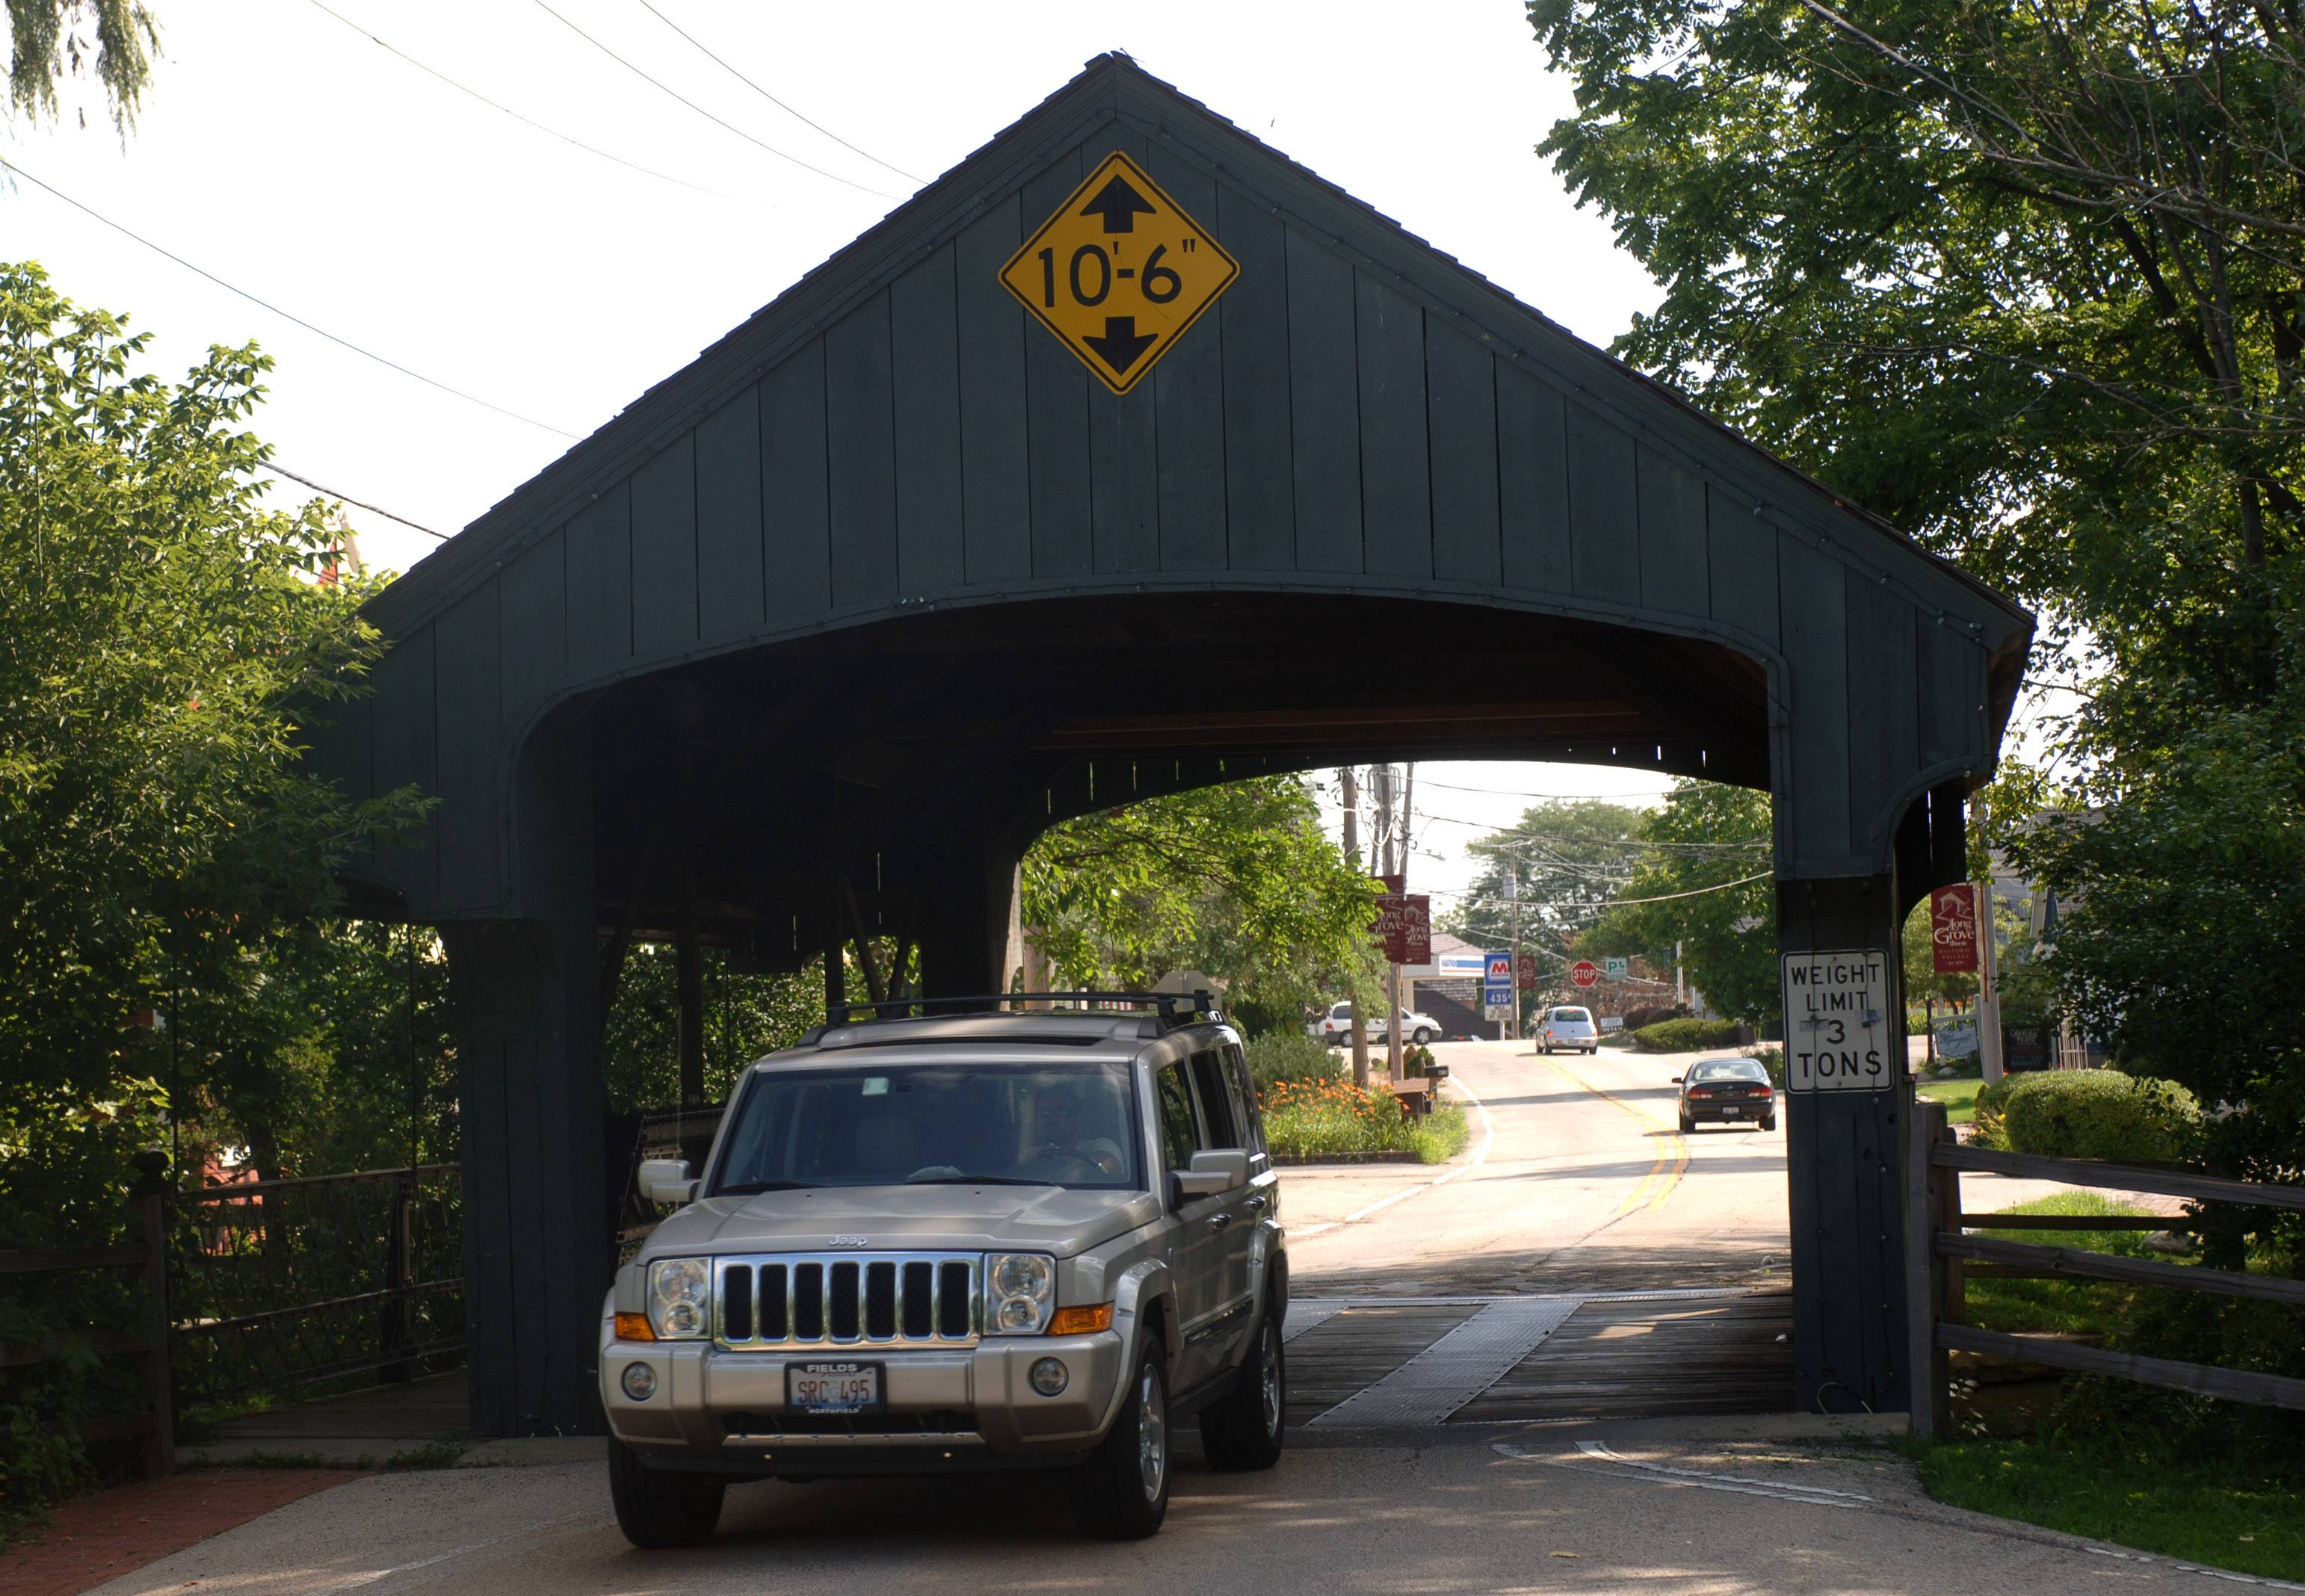 Whether to renovate or replace Long Grove's historic covered bridge will be among the most pressing issues facing the next village board after the April 4 election. Five candidates -- including four newcomers -- are running for three available seats on the panel.